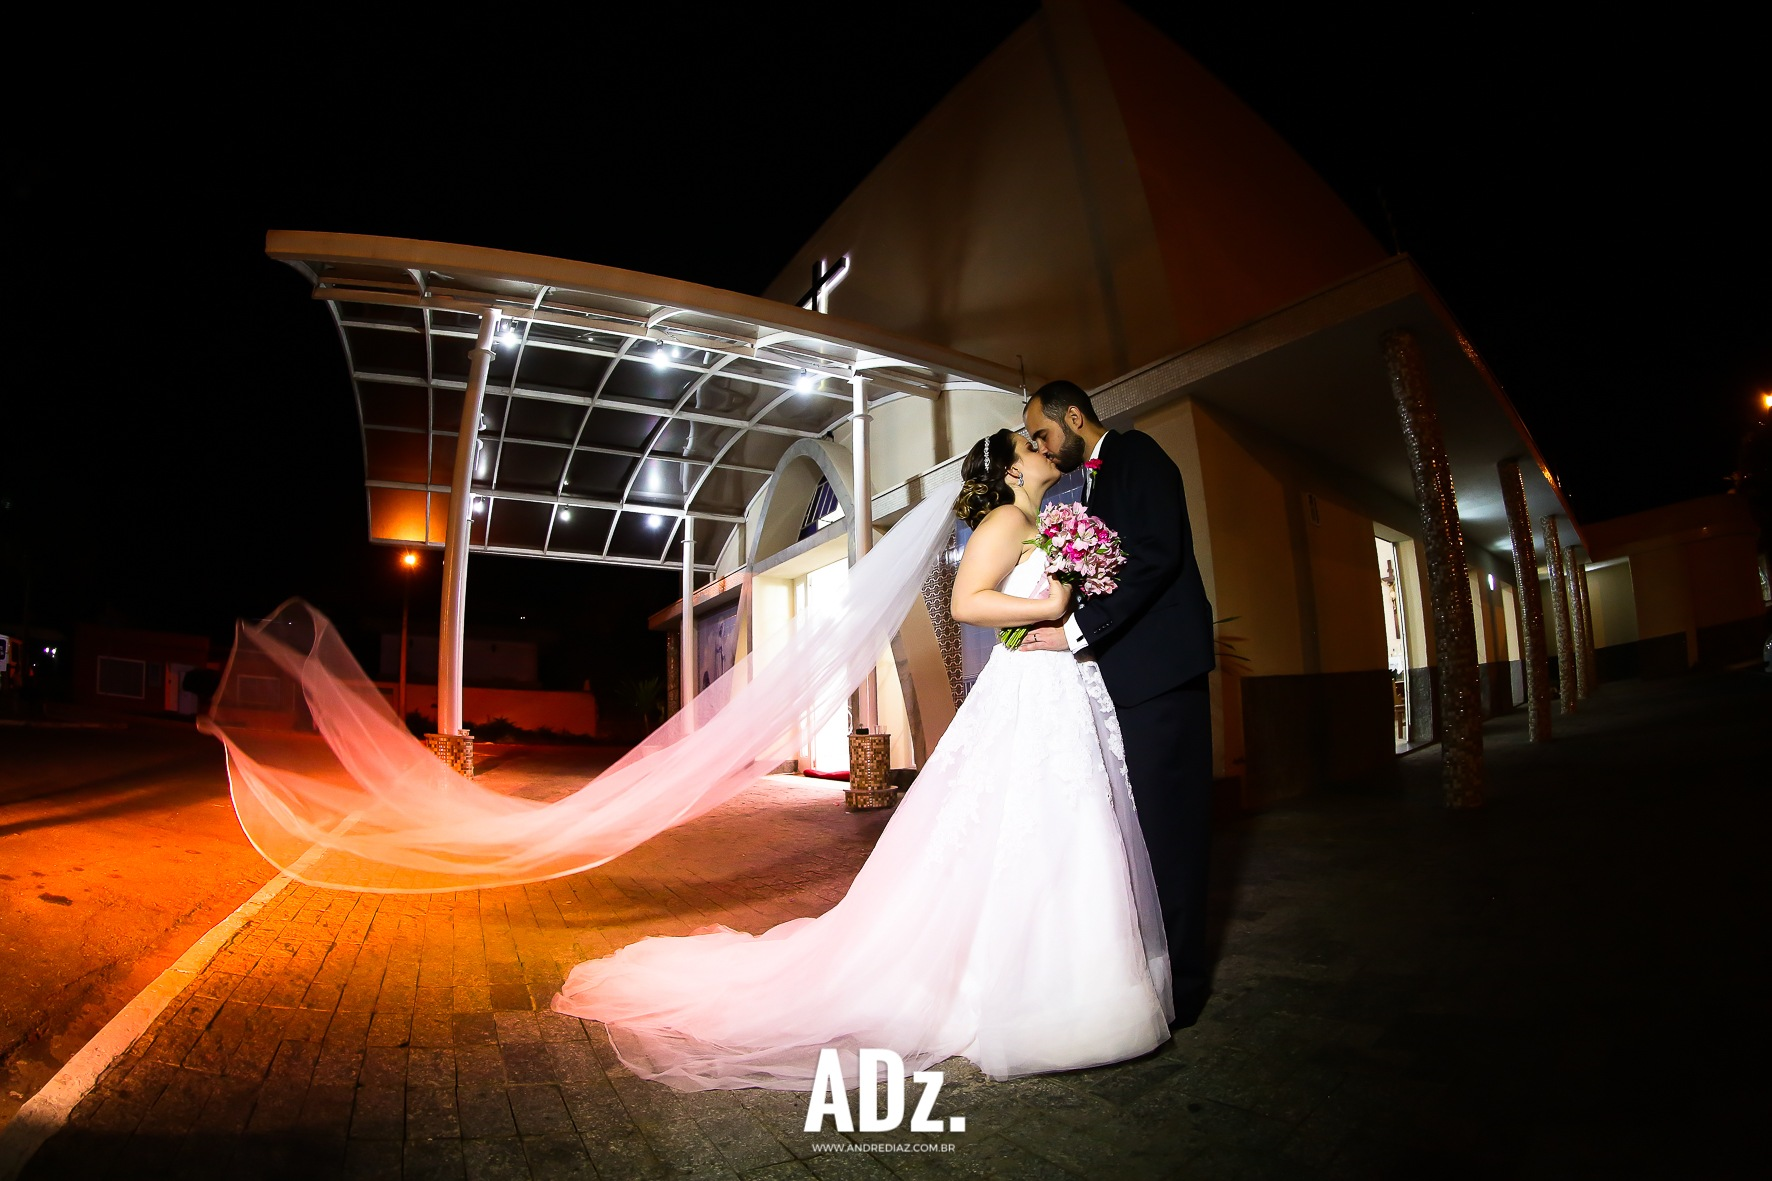 wedding by Andre Diaz